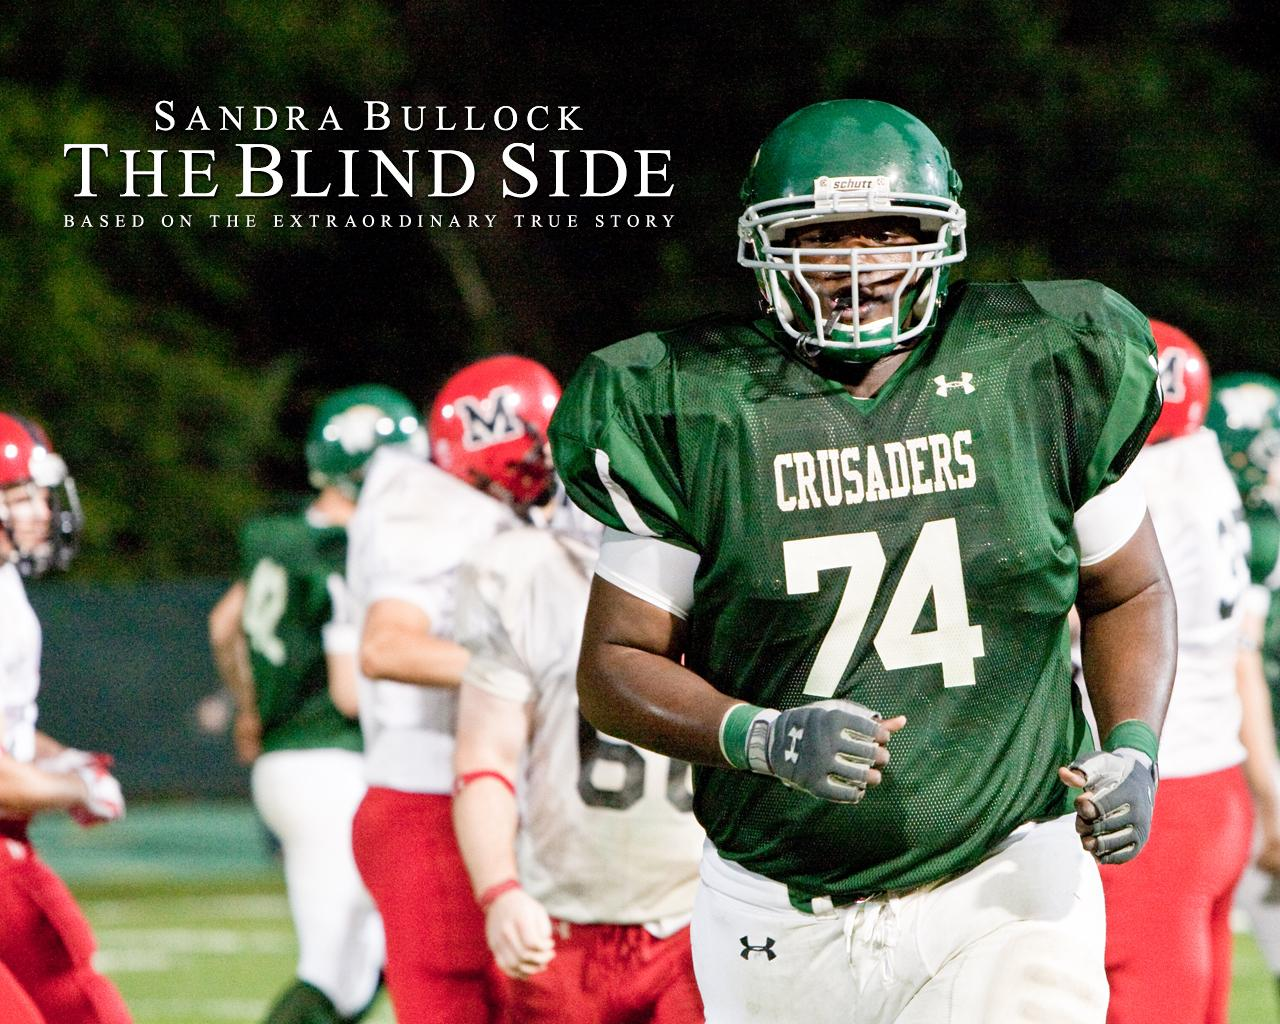 imagery and symbolism in the film the blind side Free darker side papers and virginia as well as his beliefs about the war by use of imagery and symbolism - john lee hancock's film, the blind side.